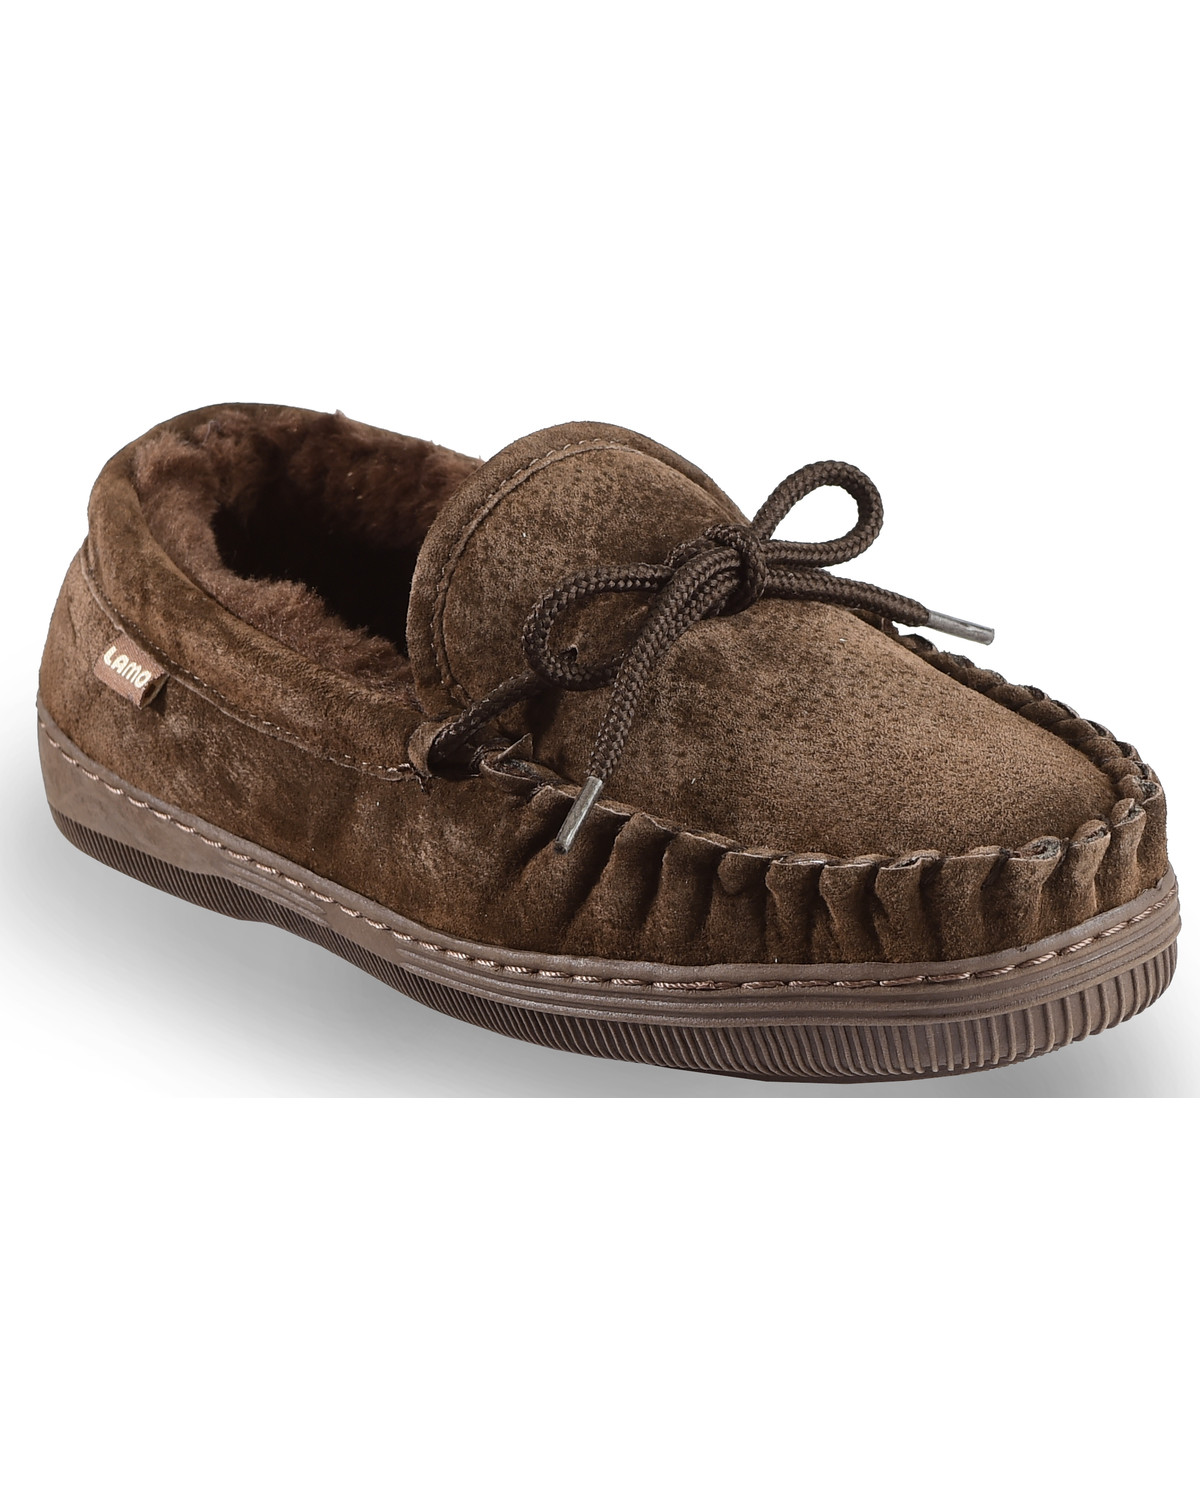 d6939545f67 Lamo Women s Leather Moccasin Slippers